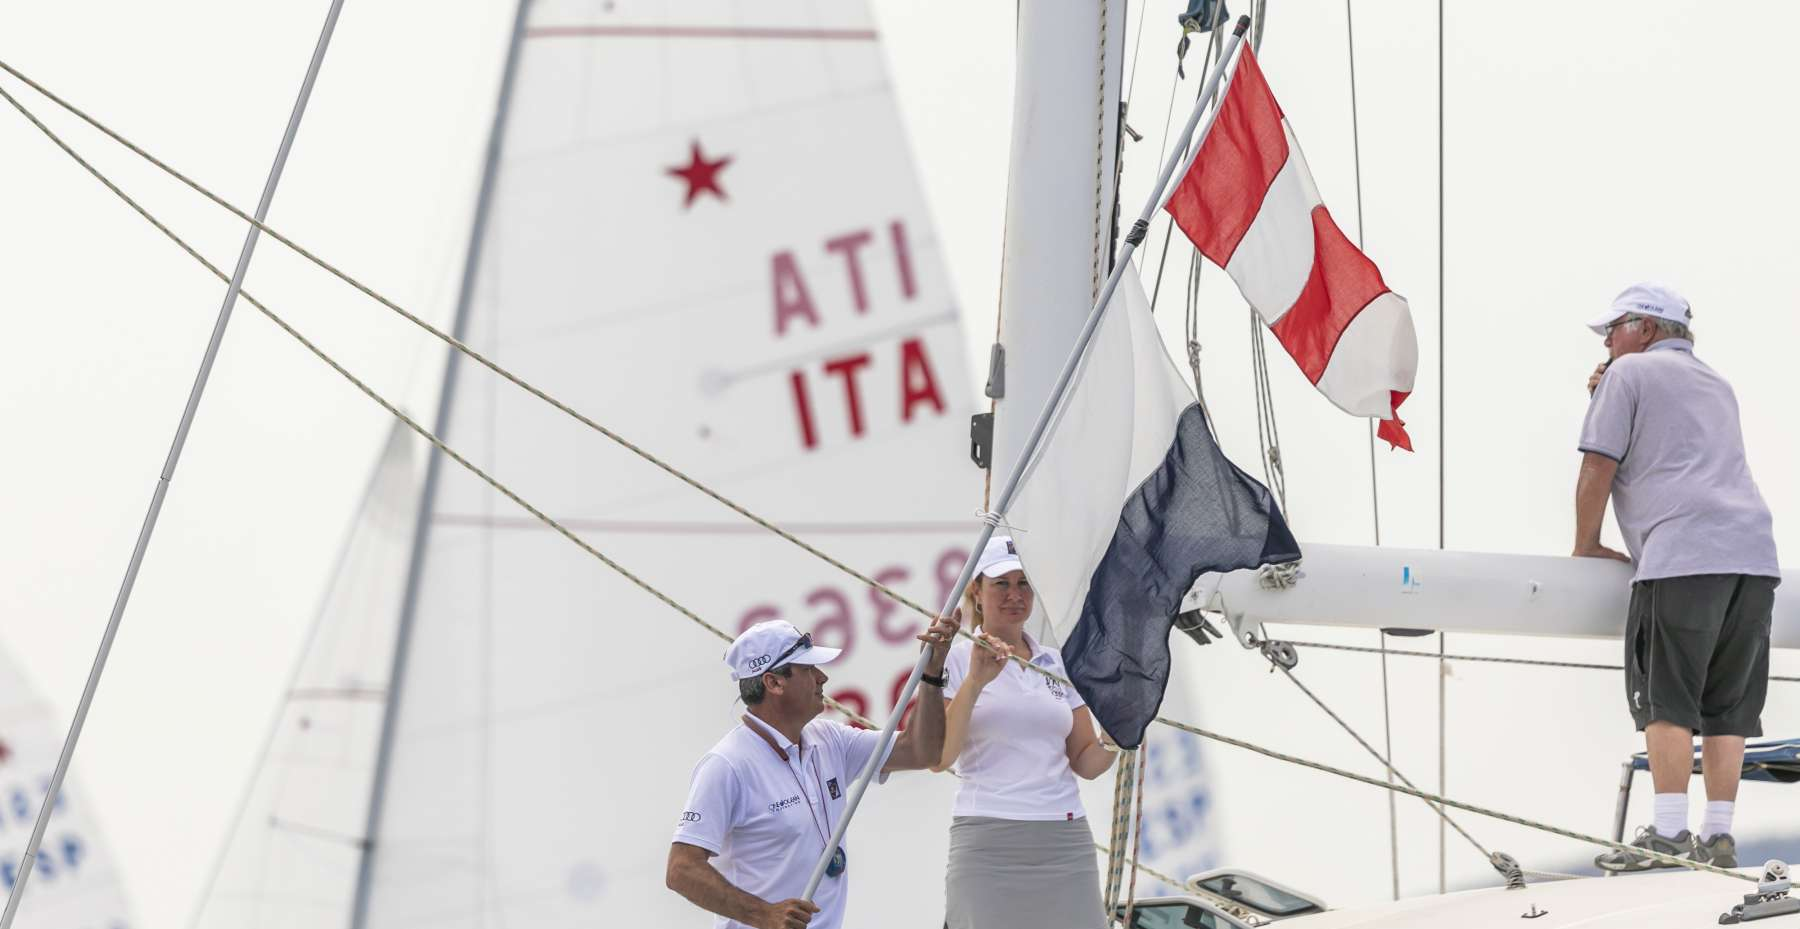 Star Class World Championship: no wind, no race - NEWS - Yacht Club Costa Smeralda